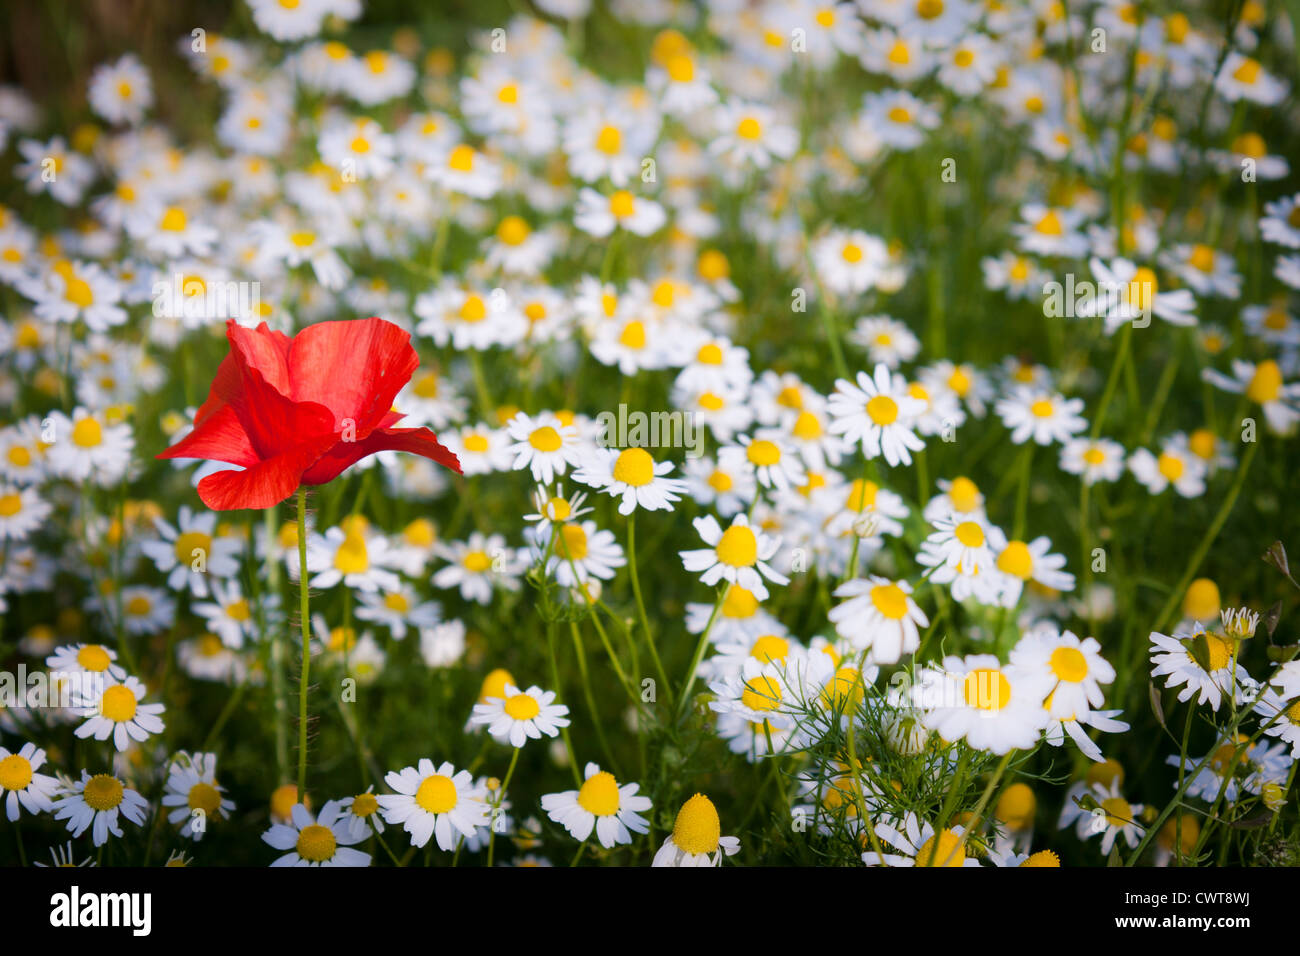 Poppy, Papaver rhoeas in a field of daisies, Bellis perennis Stock Photo